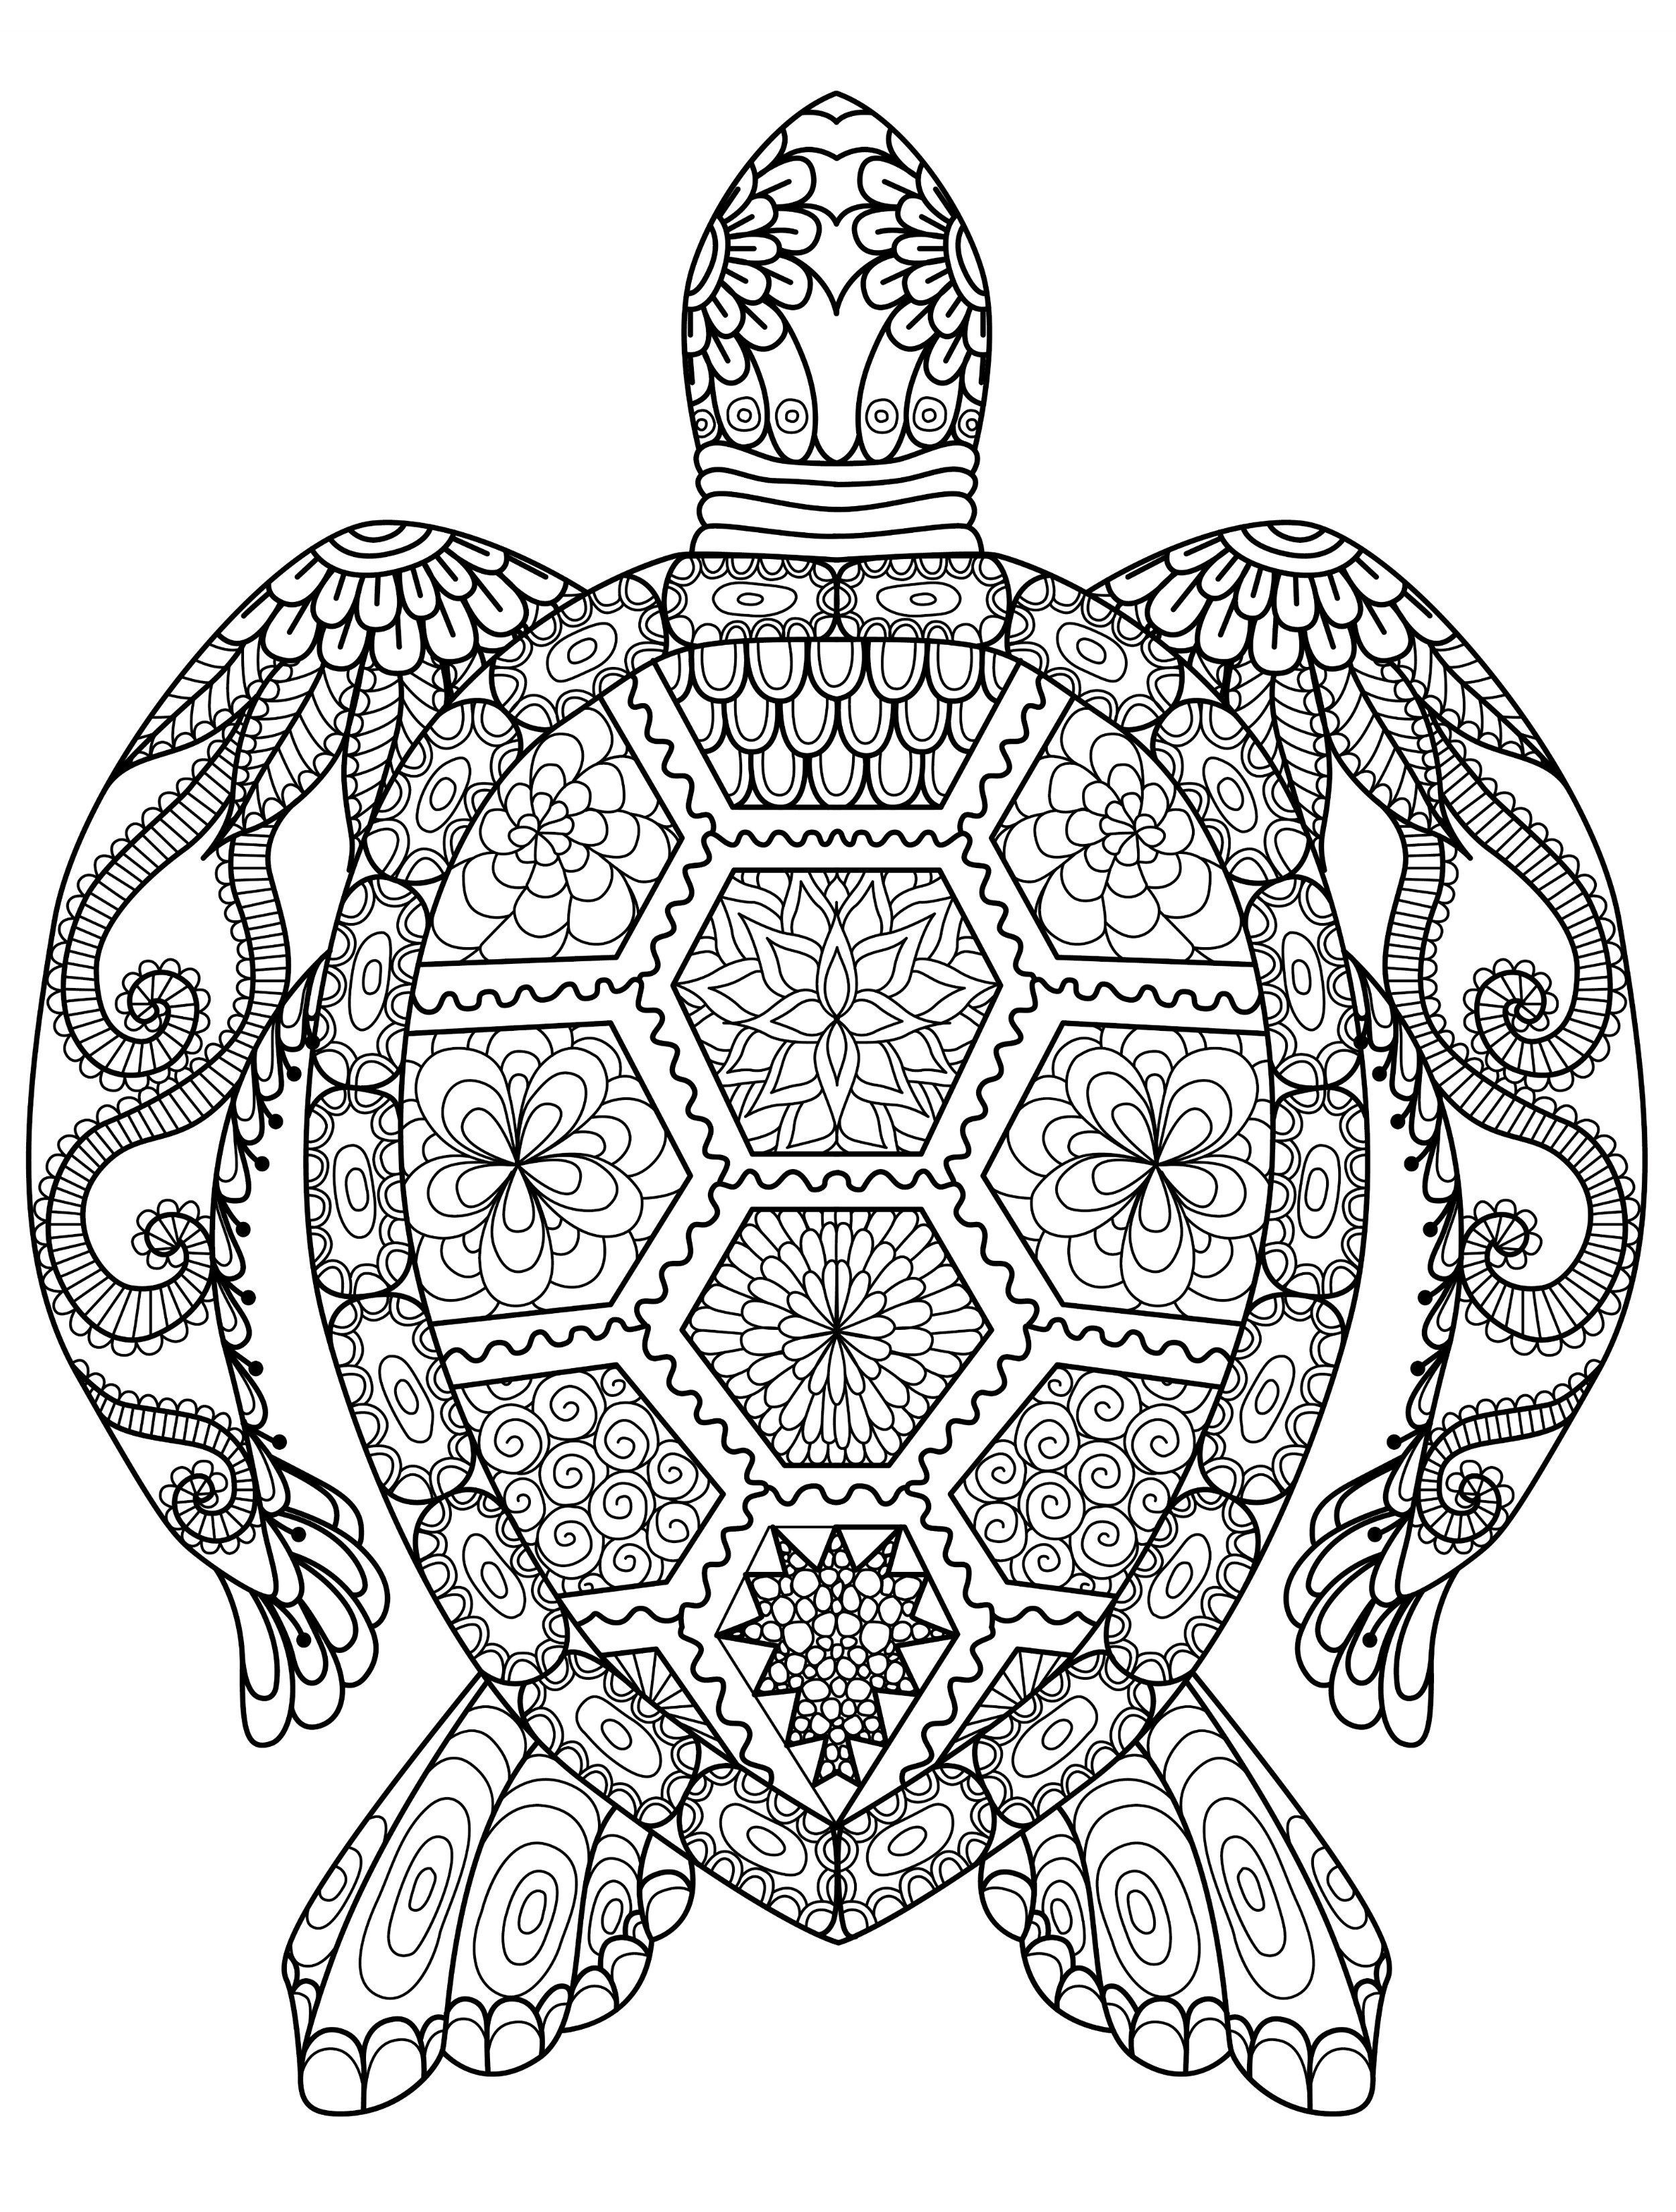 20 Gorgeous Free Printable Adult Coloring Pages … | Adult Coloring - Free Printable Summer Coloring Pages For Adults